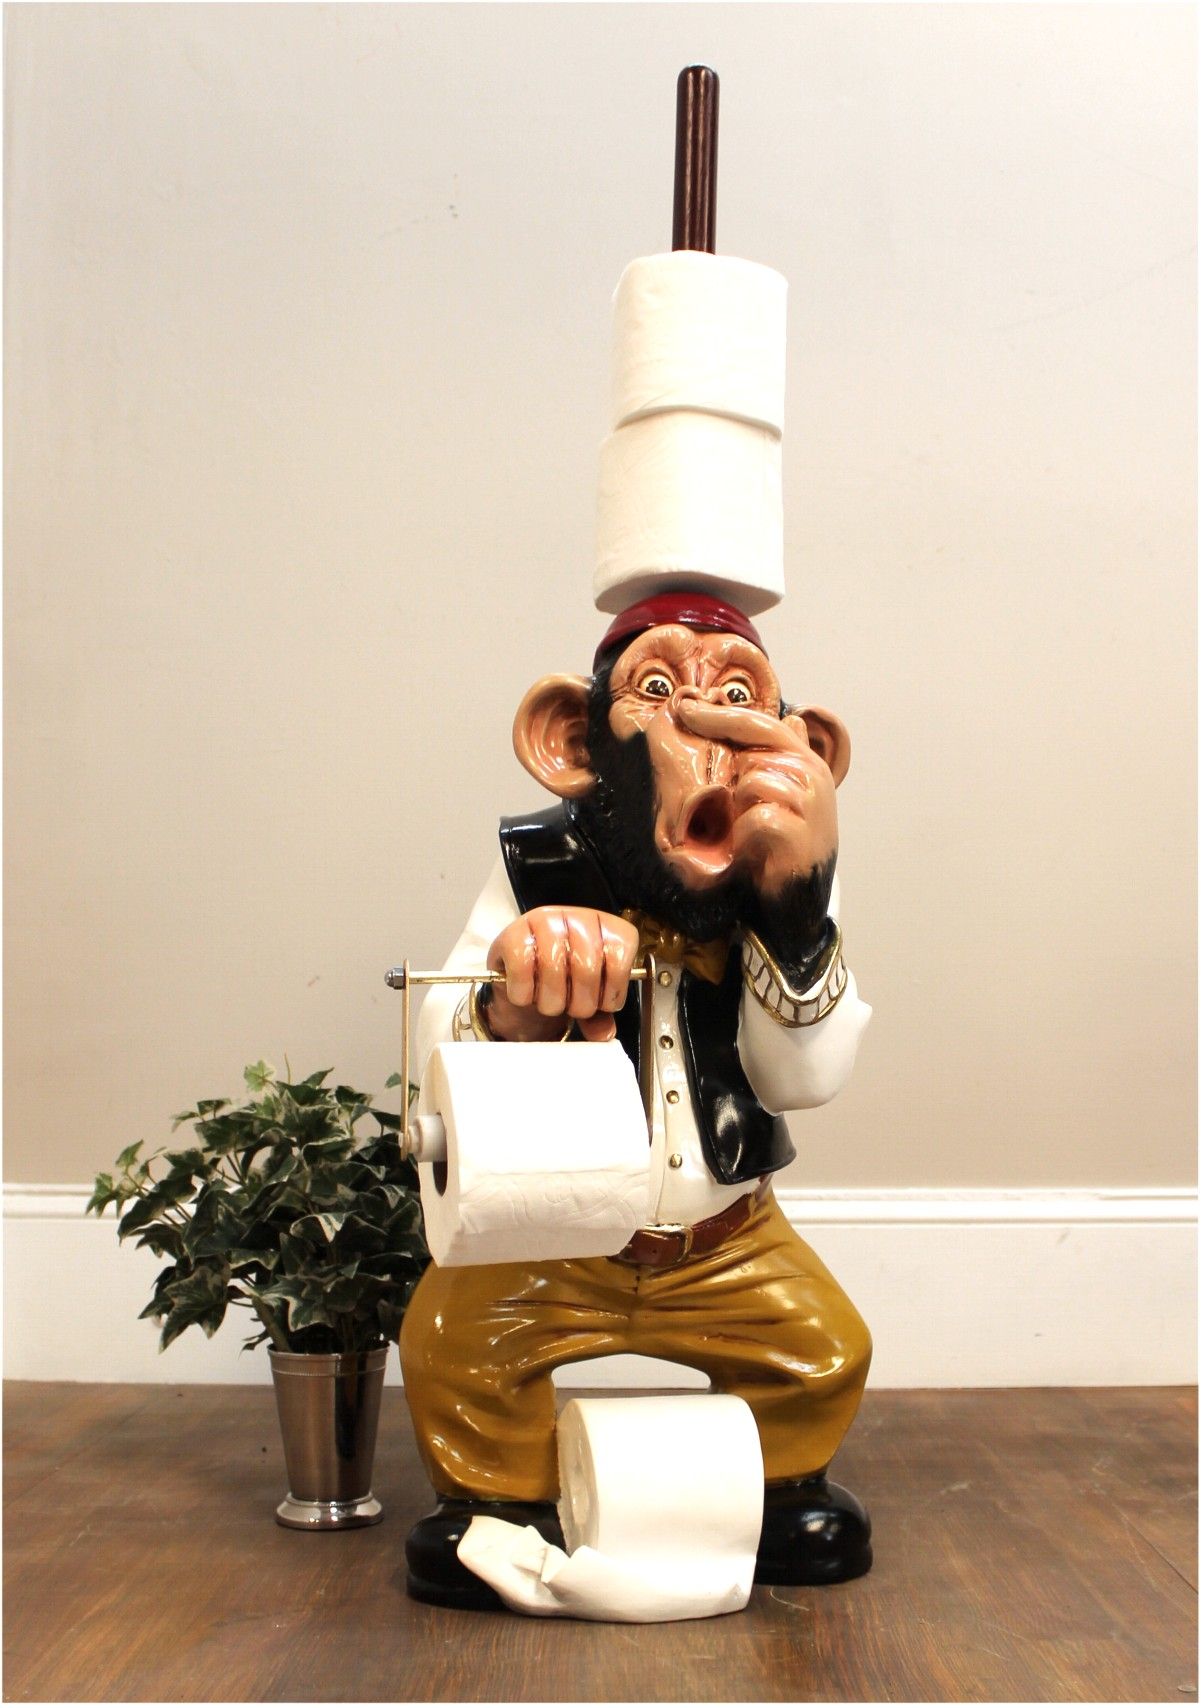 Monkey butler toilet paper holder nose 3 39 statue funny ape plunger on head the kings bay Funny toilet paper holders